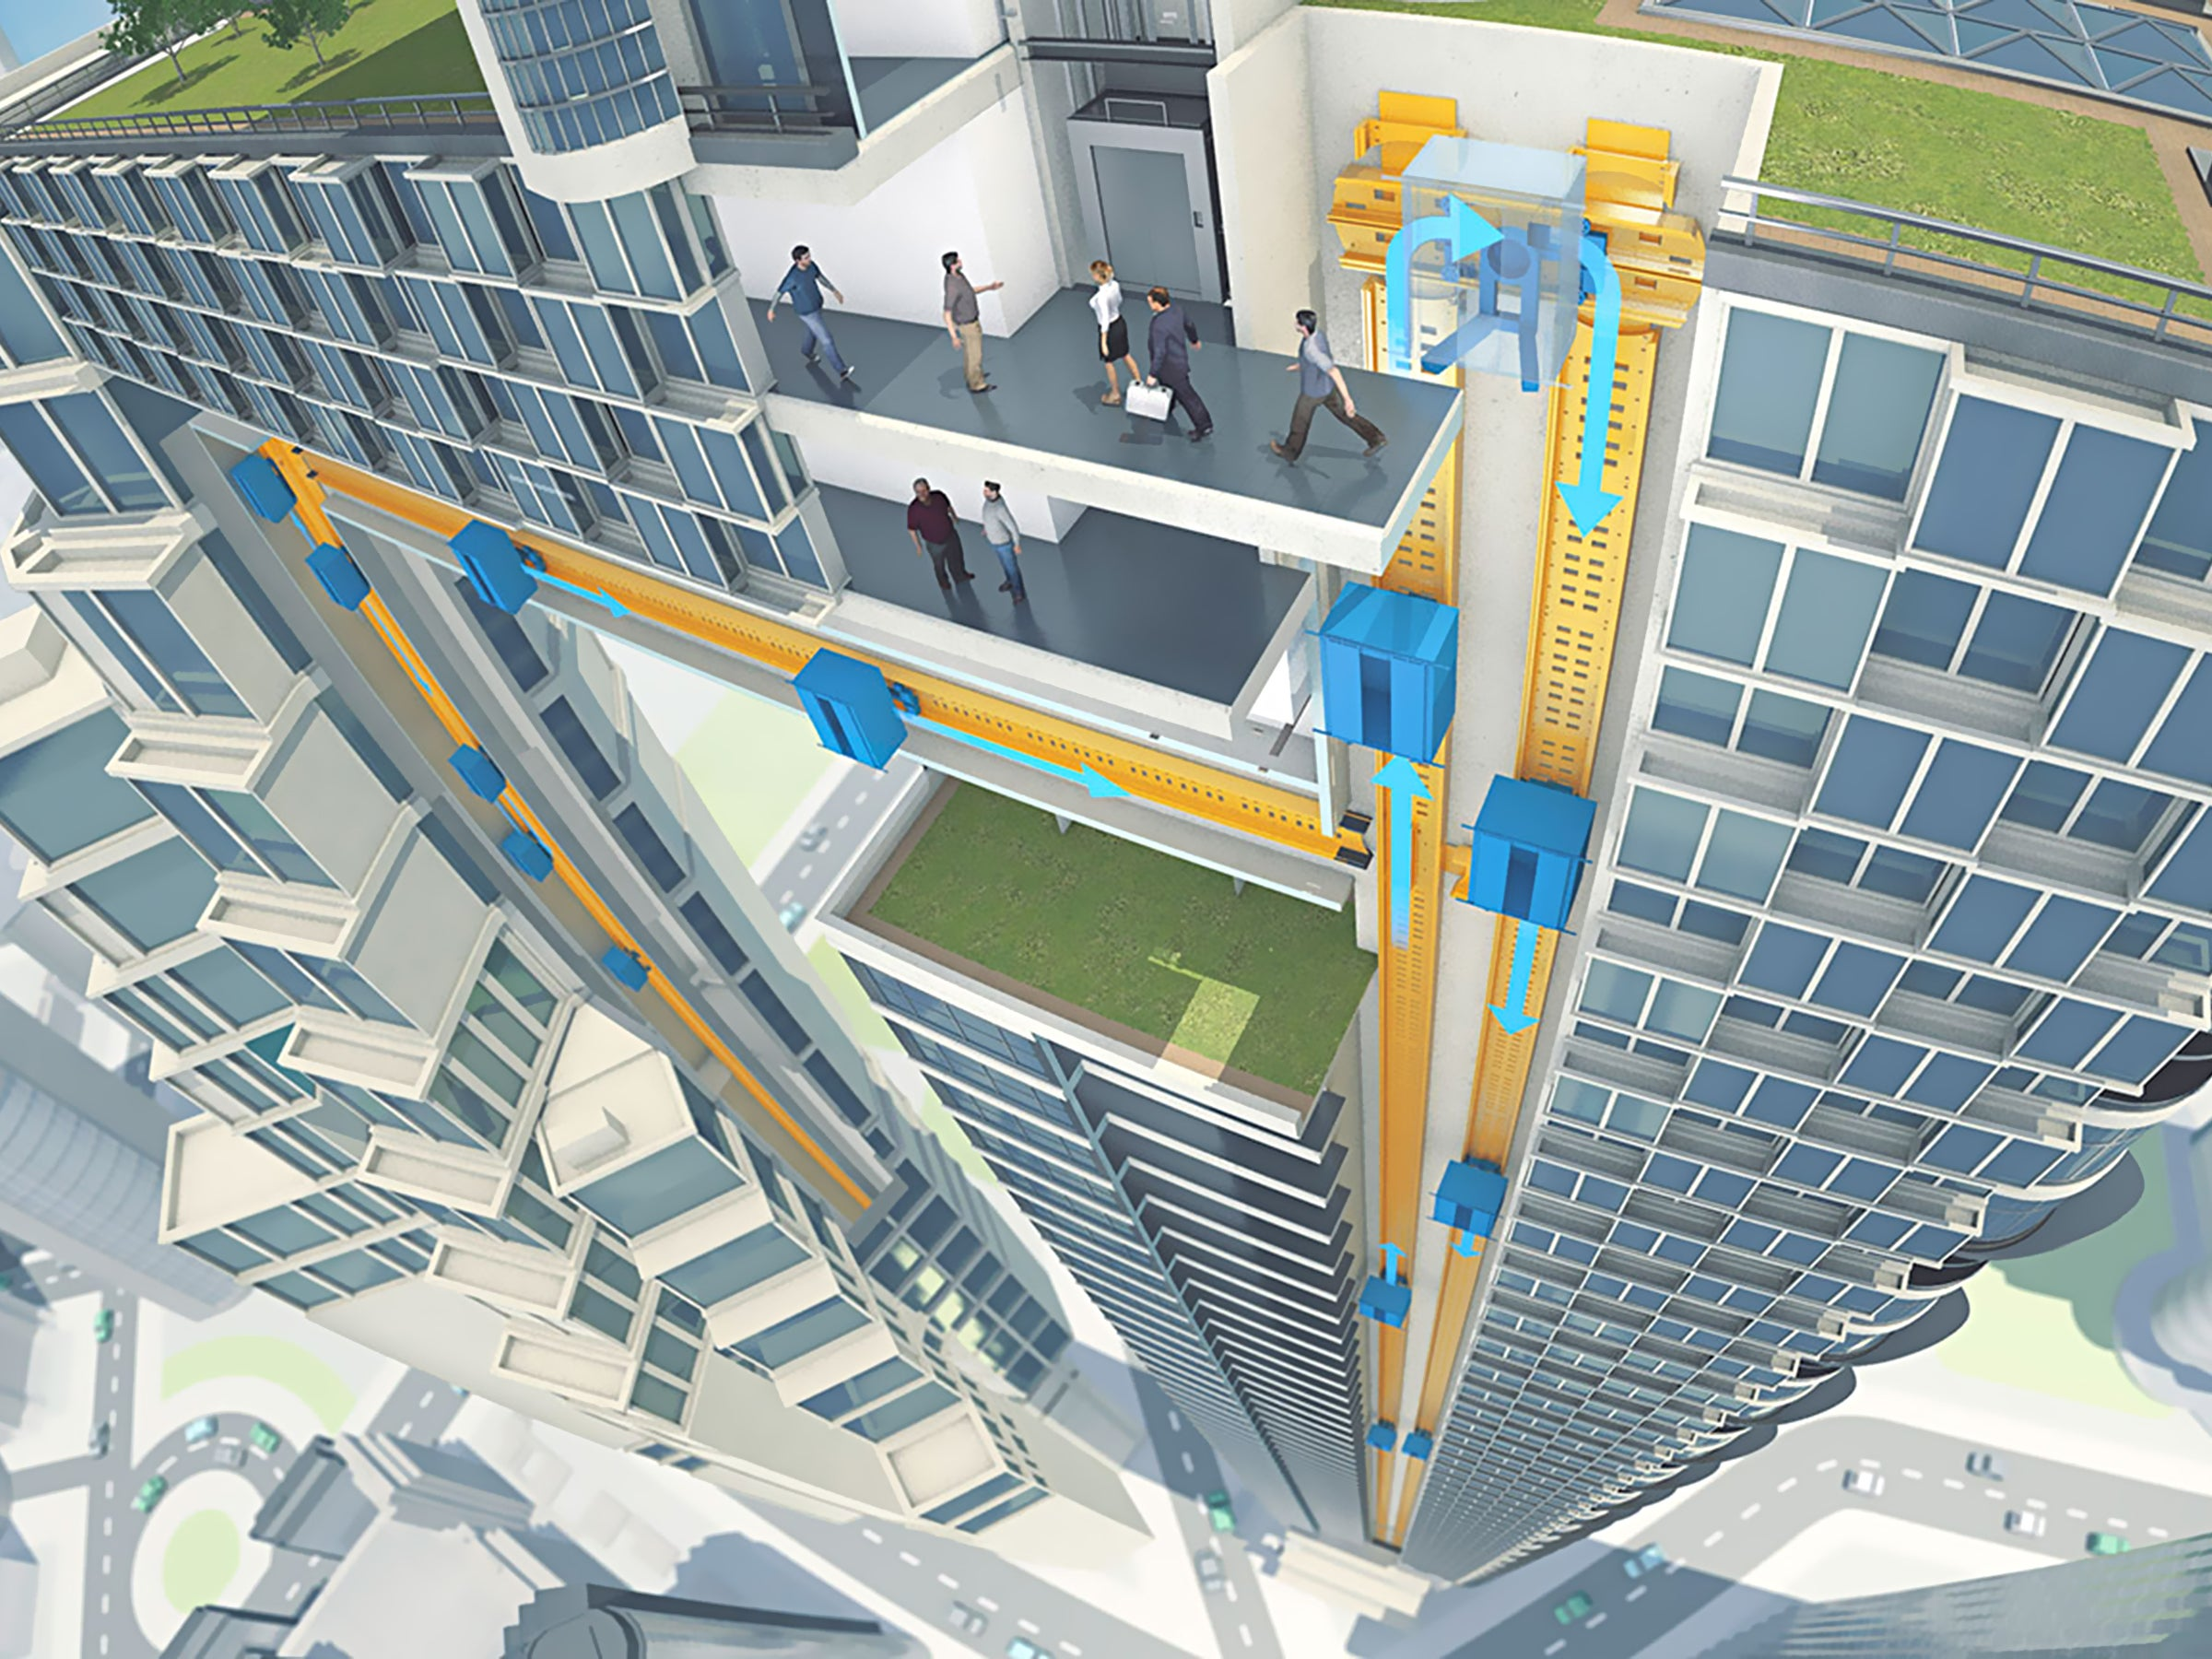 Magnetically Levitating Elevators Could Go Up, Down, And Sideways